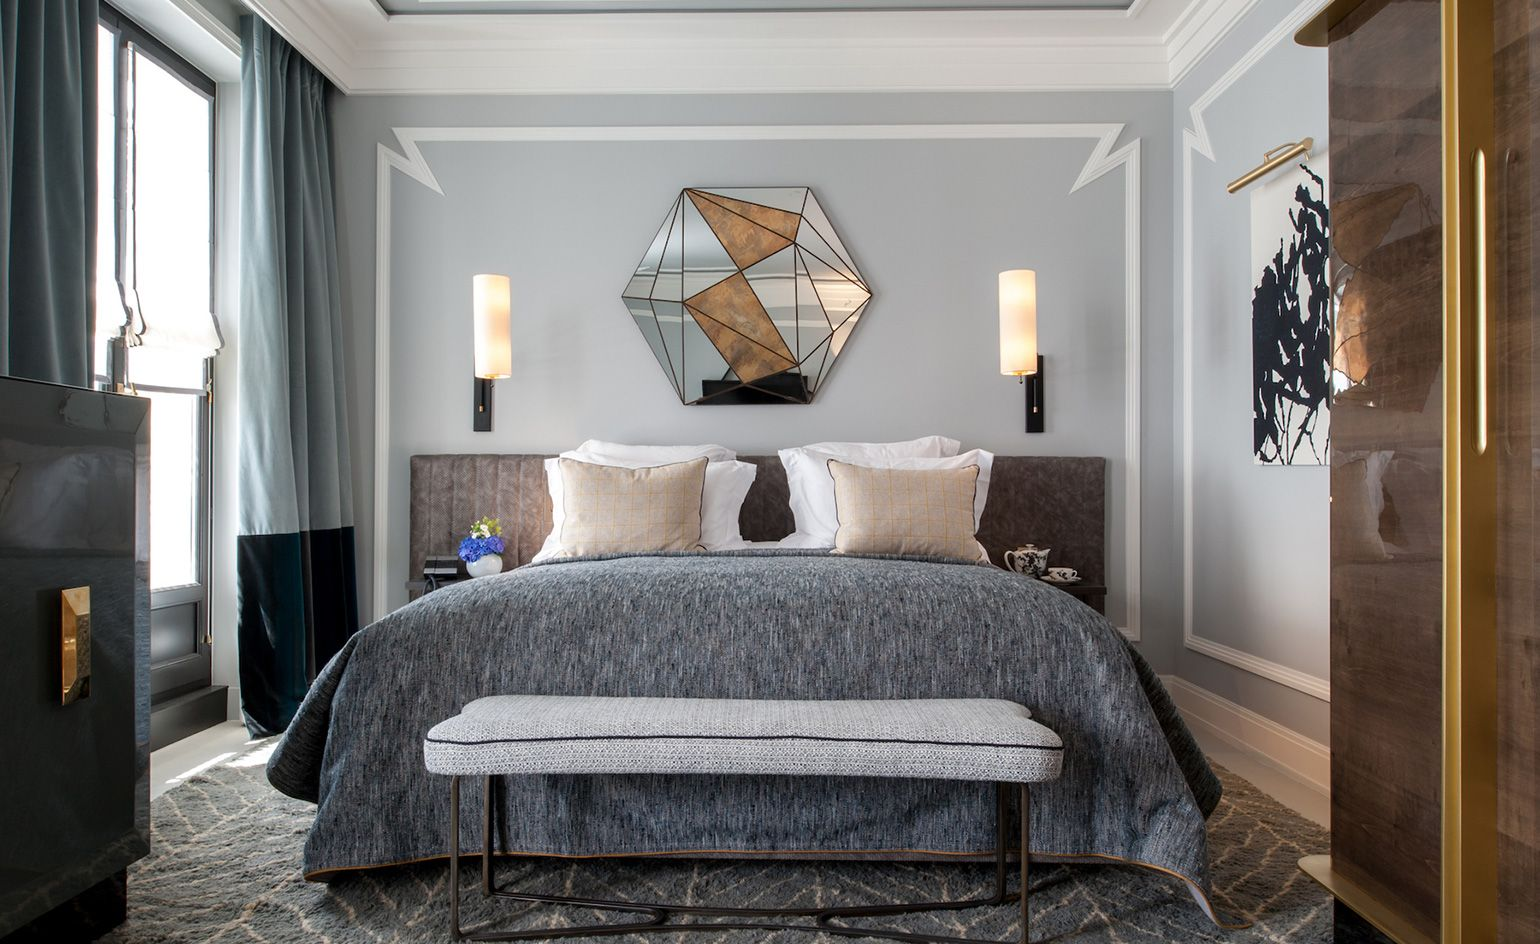 10 Shades Of Gray: Versatile, Neutral And Serene Bedroom Designs bedroom designs 10 Shades Of Gray: Versatile, Neutral And Serene Bedroom Designs Gray Is The New Black Versatile Neutral And Serene Bedroom Designs jean louis